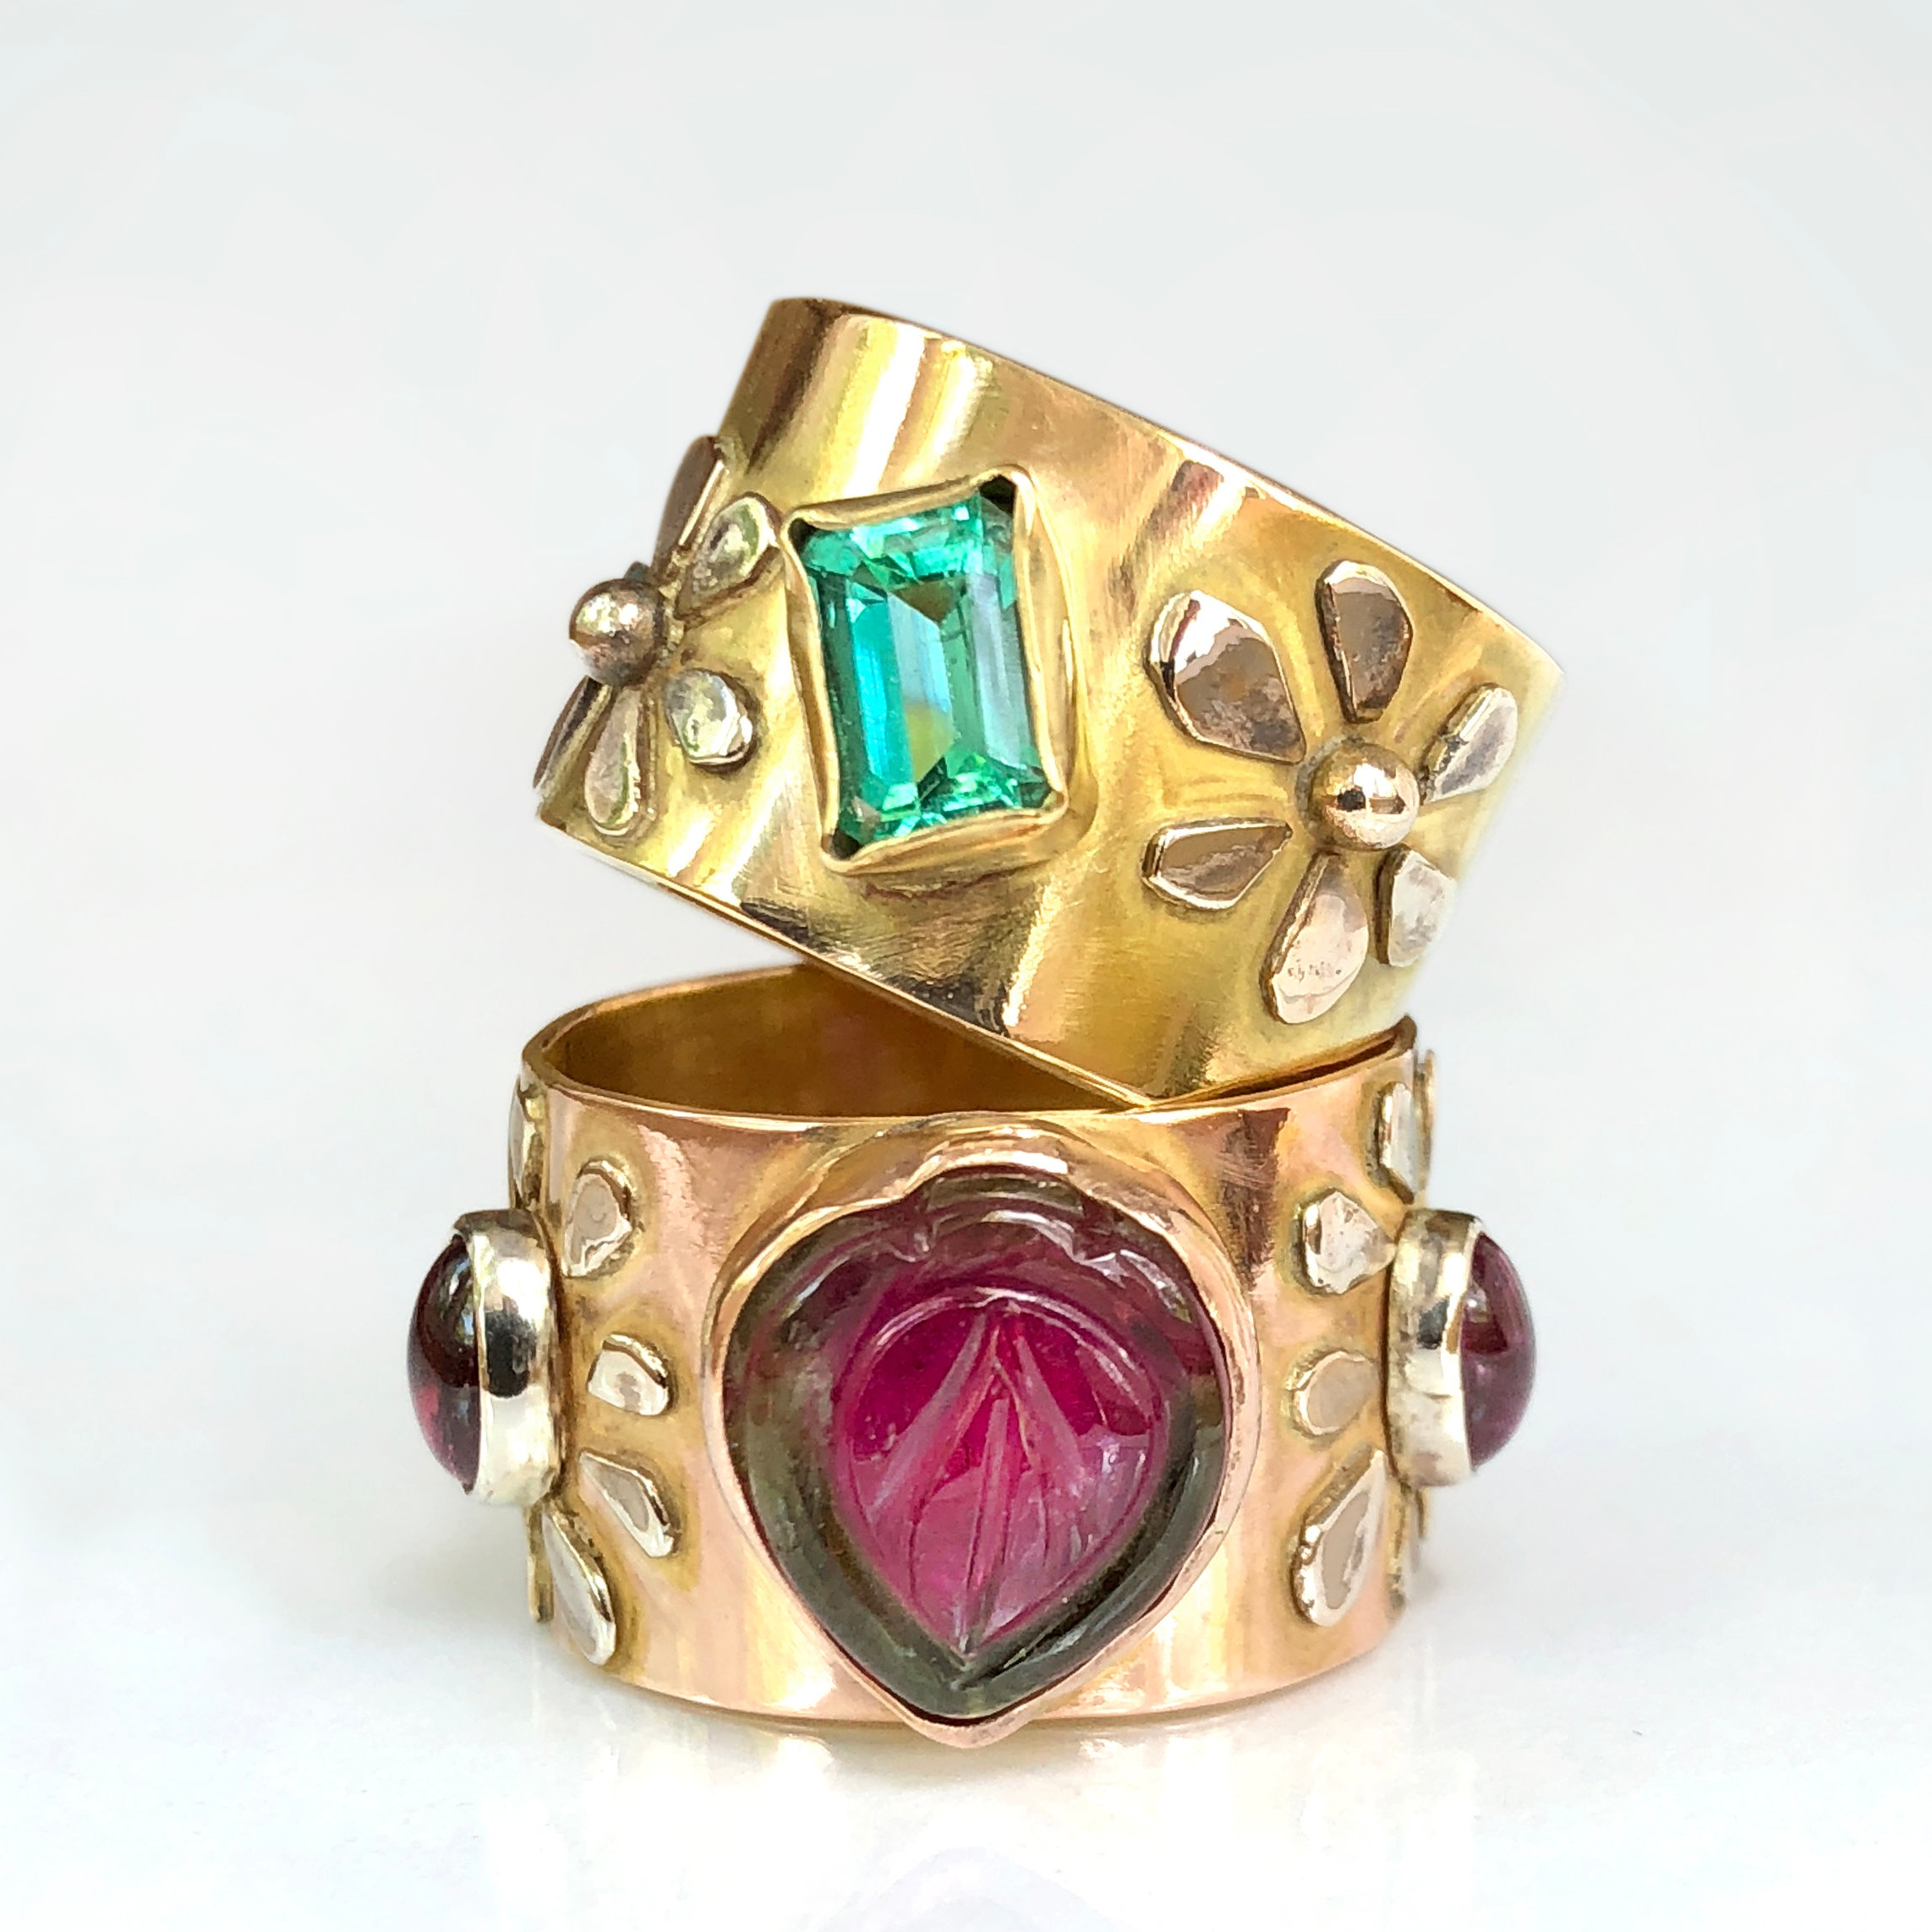 Emerald and watermelon tourmaline Wide band rings - 14K Solid Gold